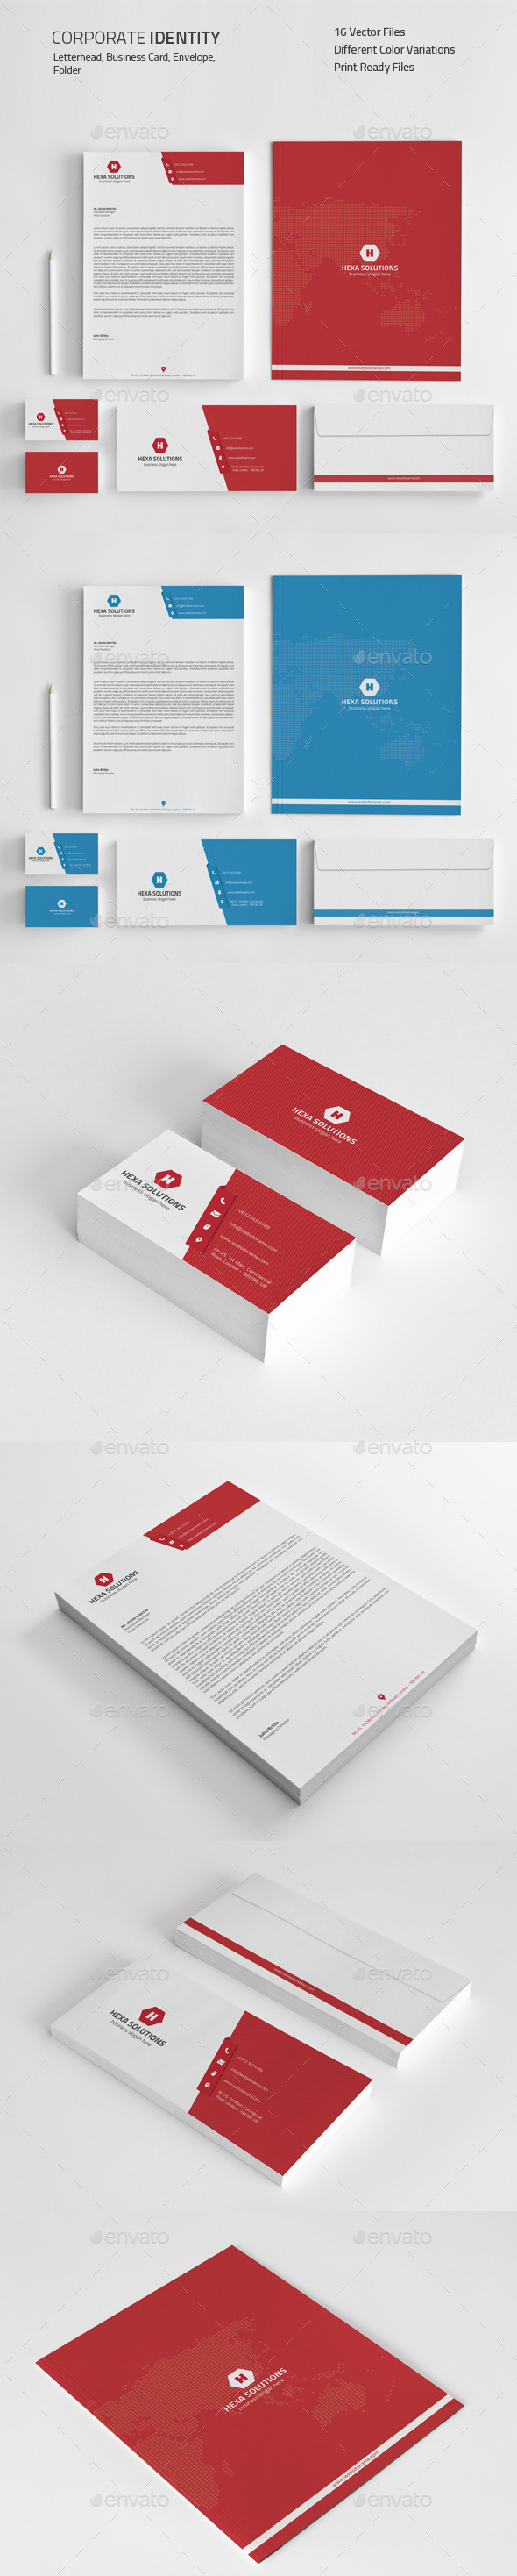 GraphicRiver Corporate Identity 03 9610363